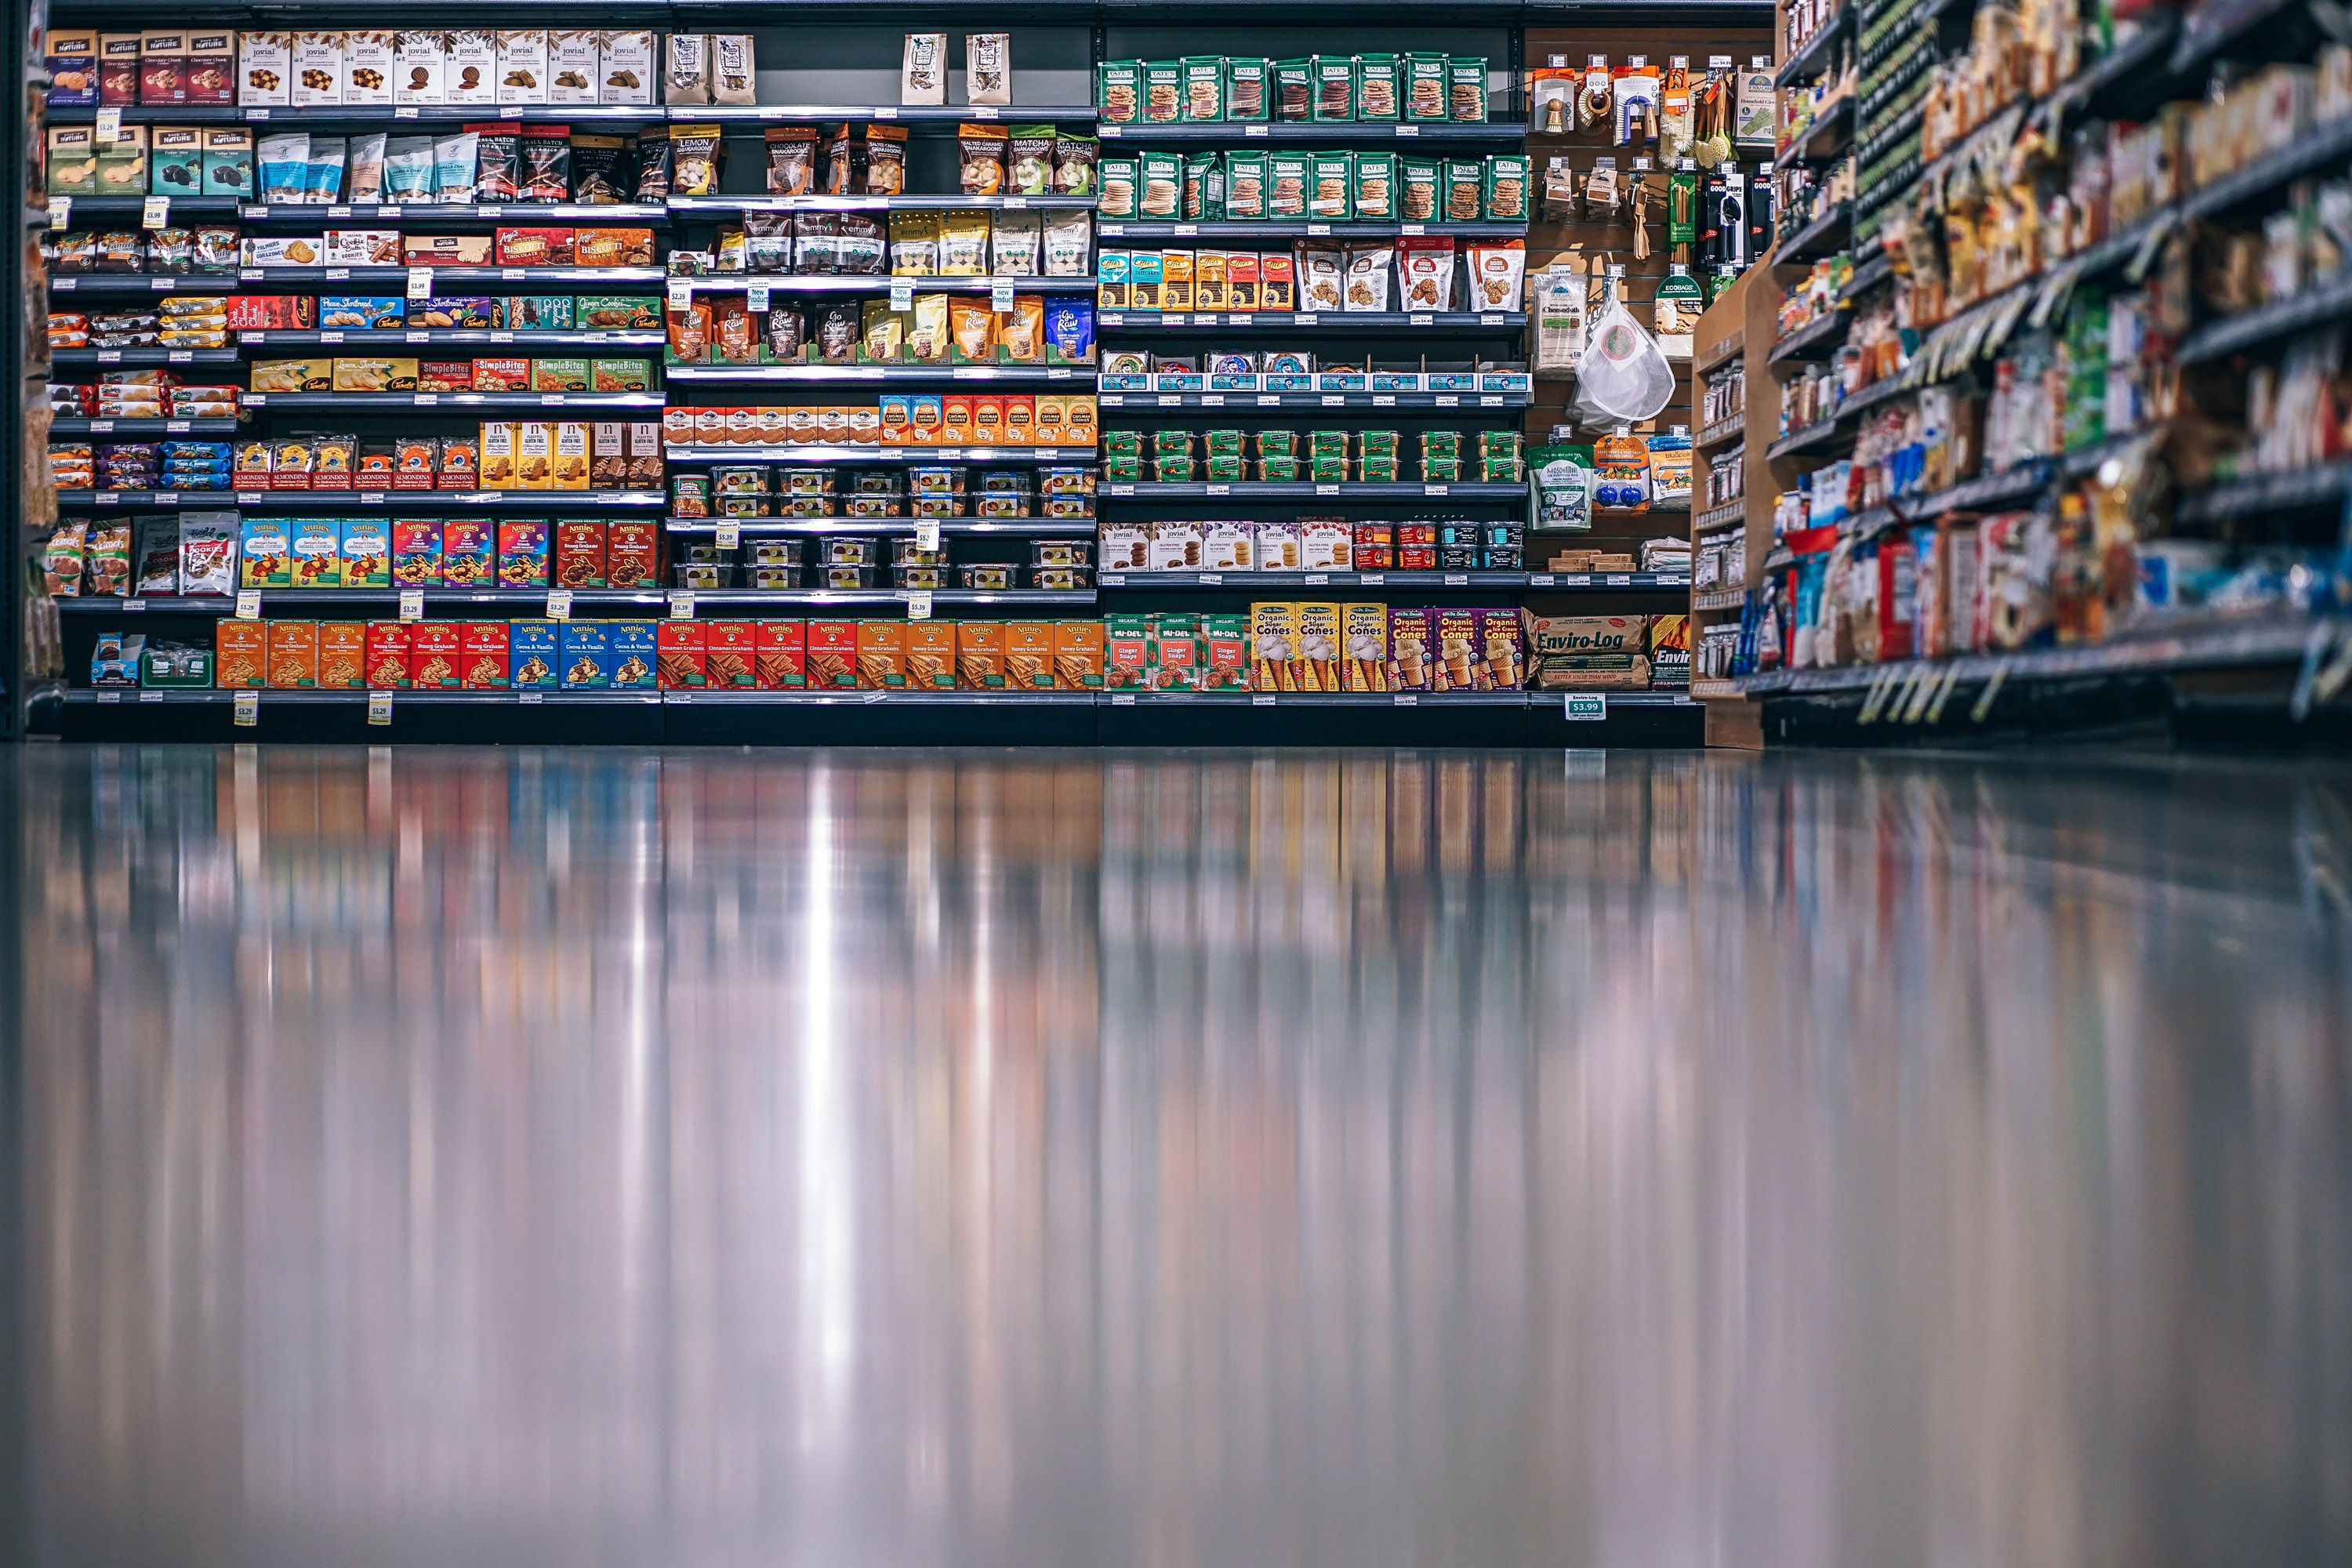 Deep insights into customer behavior using video in retail stores